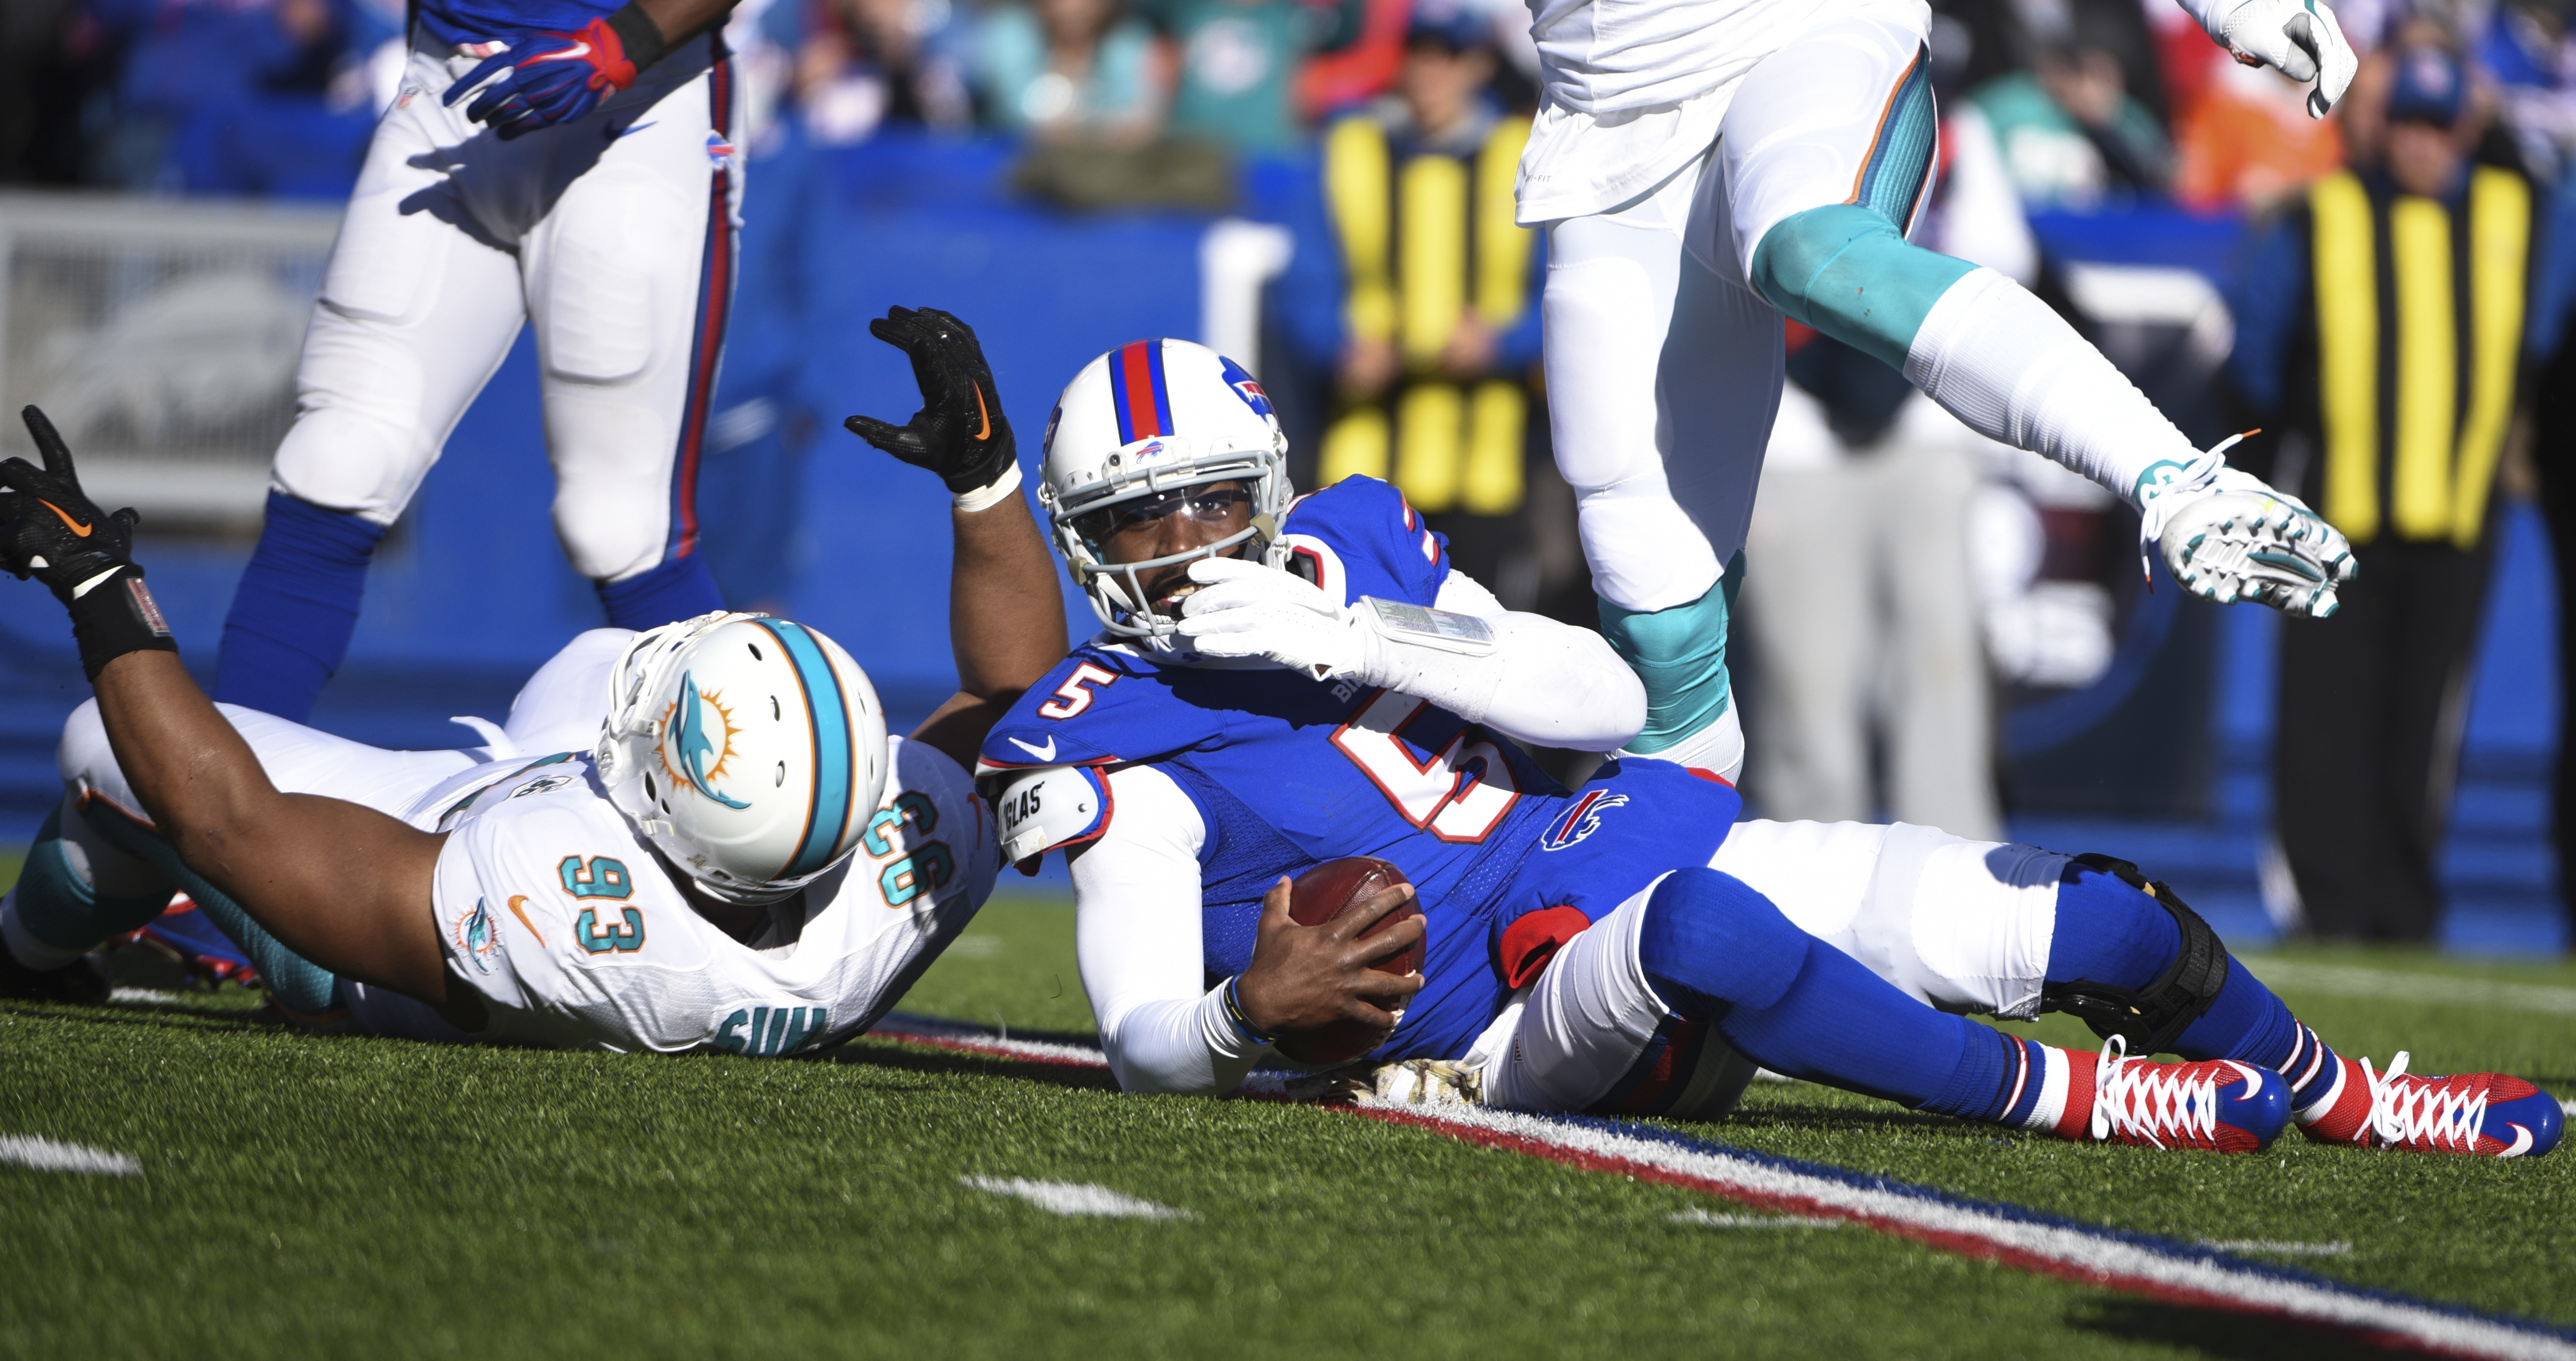 Buffalo Bills quarterback Tyrod Taylor (5) reacts after being sacked by Miami Dolphins' Ndamukong Suh (93) during the first half of an NFL football game Sunday, Nov. 8, 2015, in Orchard Park, N.Y. (AP Photo/Gary Wiepert)